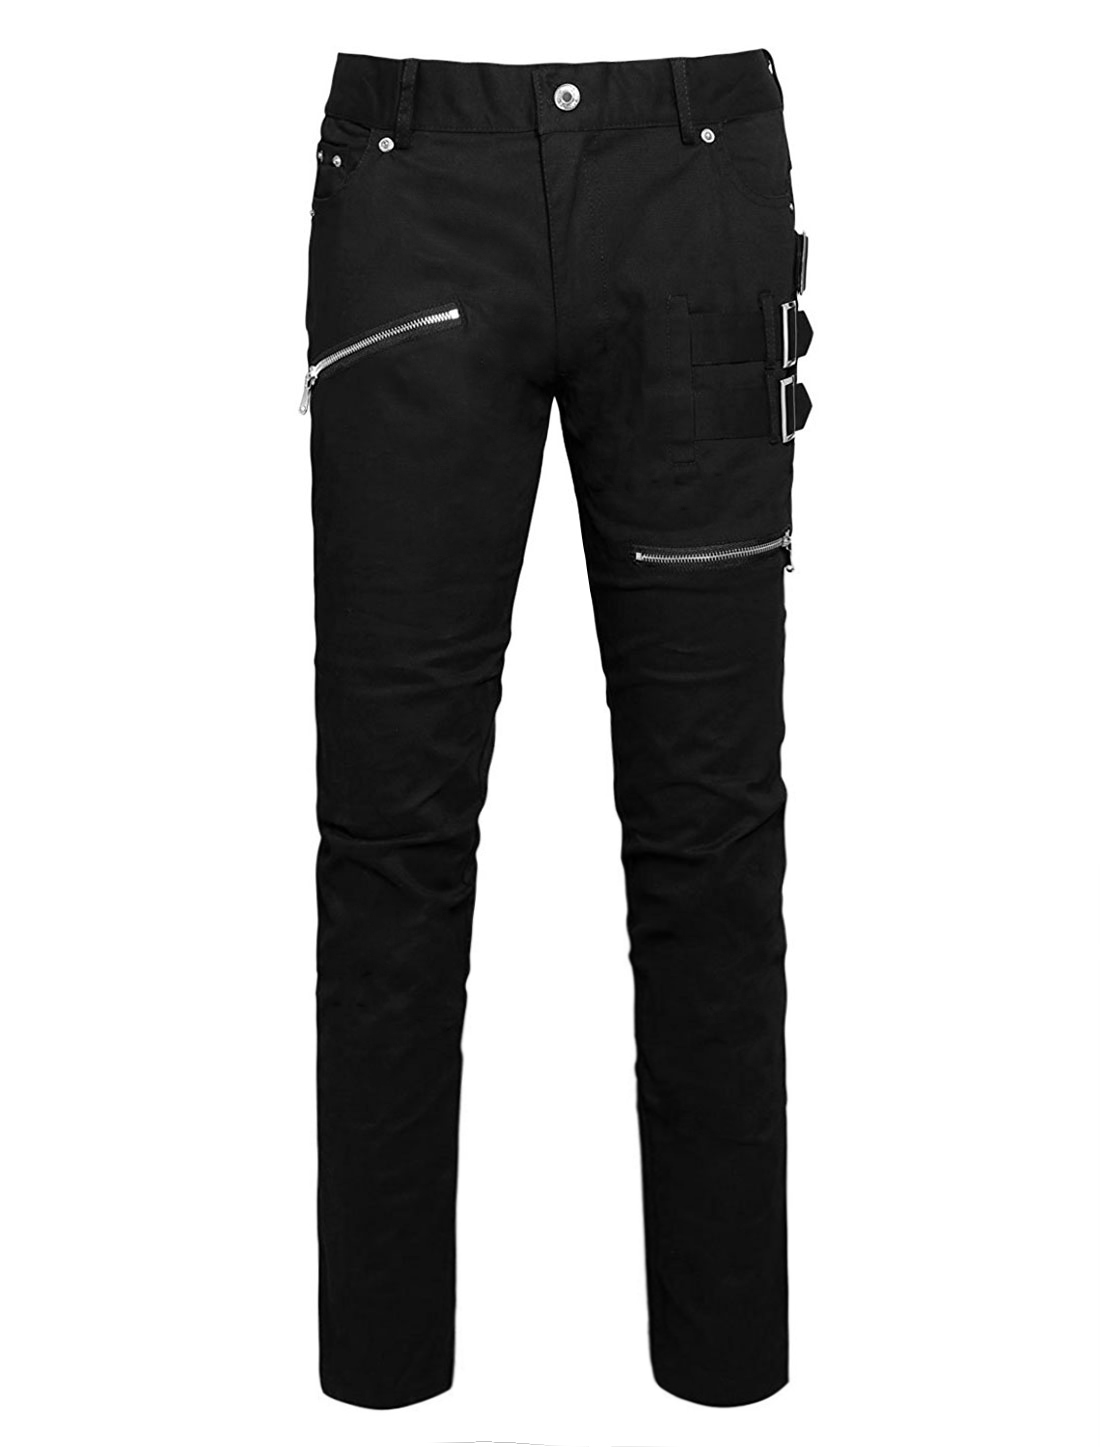 Men Casual Slim Fit Pockets Patch Buckle Zipper Gothic Punk Rock Pants Black S